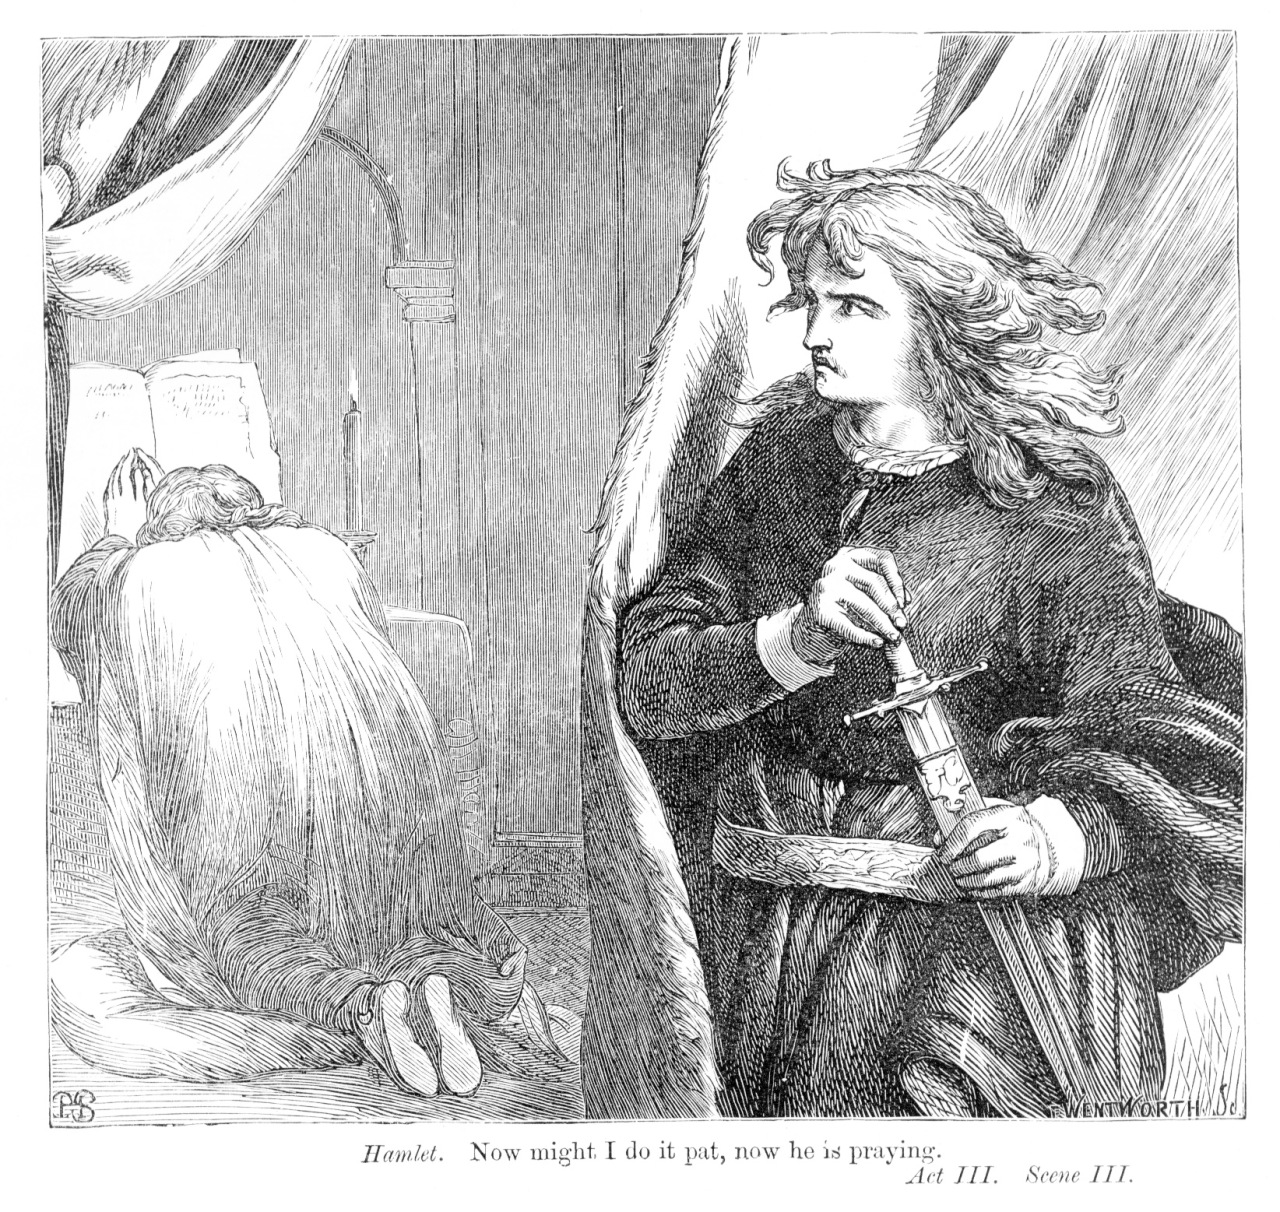 hamlet v claudius Throughout the play, hamlet, by william shakespeare, hamlet learns the truth of his father's recent murder as the play goes on hamlet promises to avenge his father's murderer, his uncle and newly crowned king, claudius.